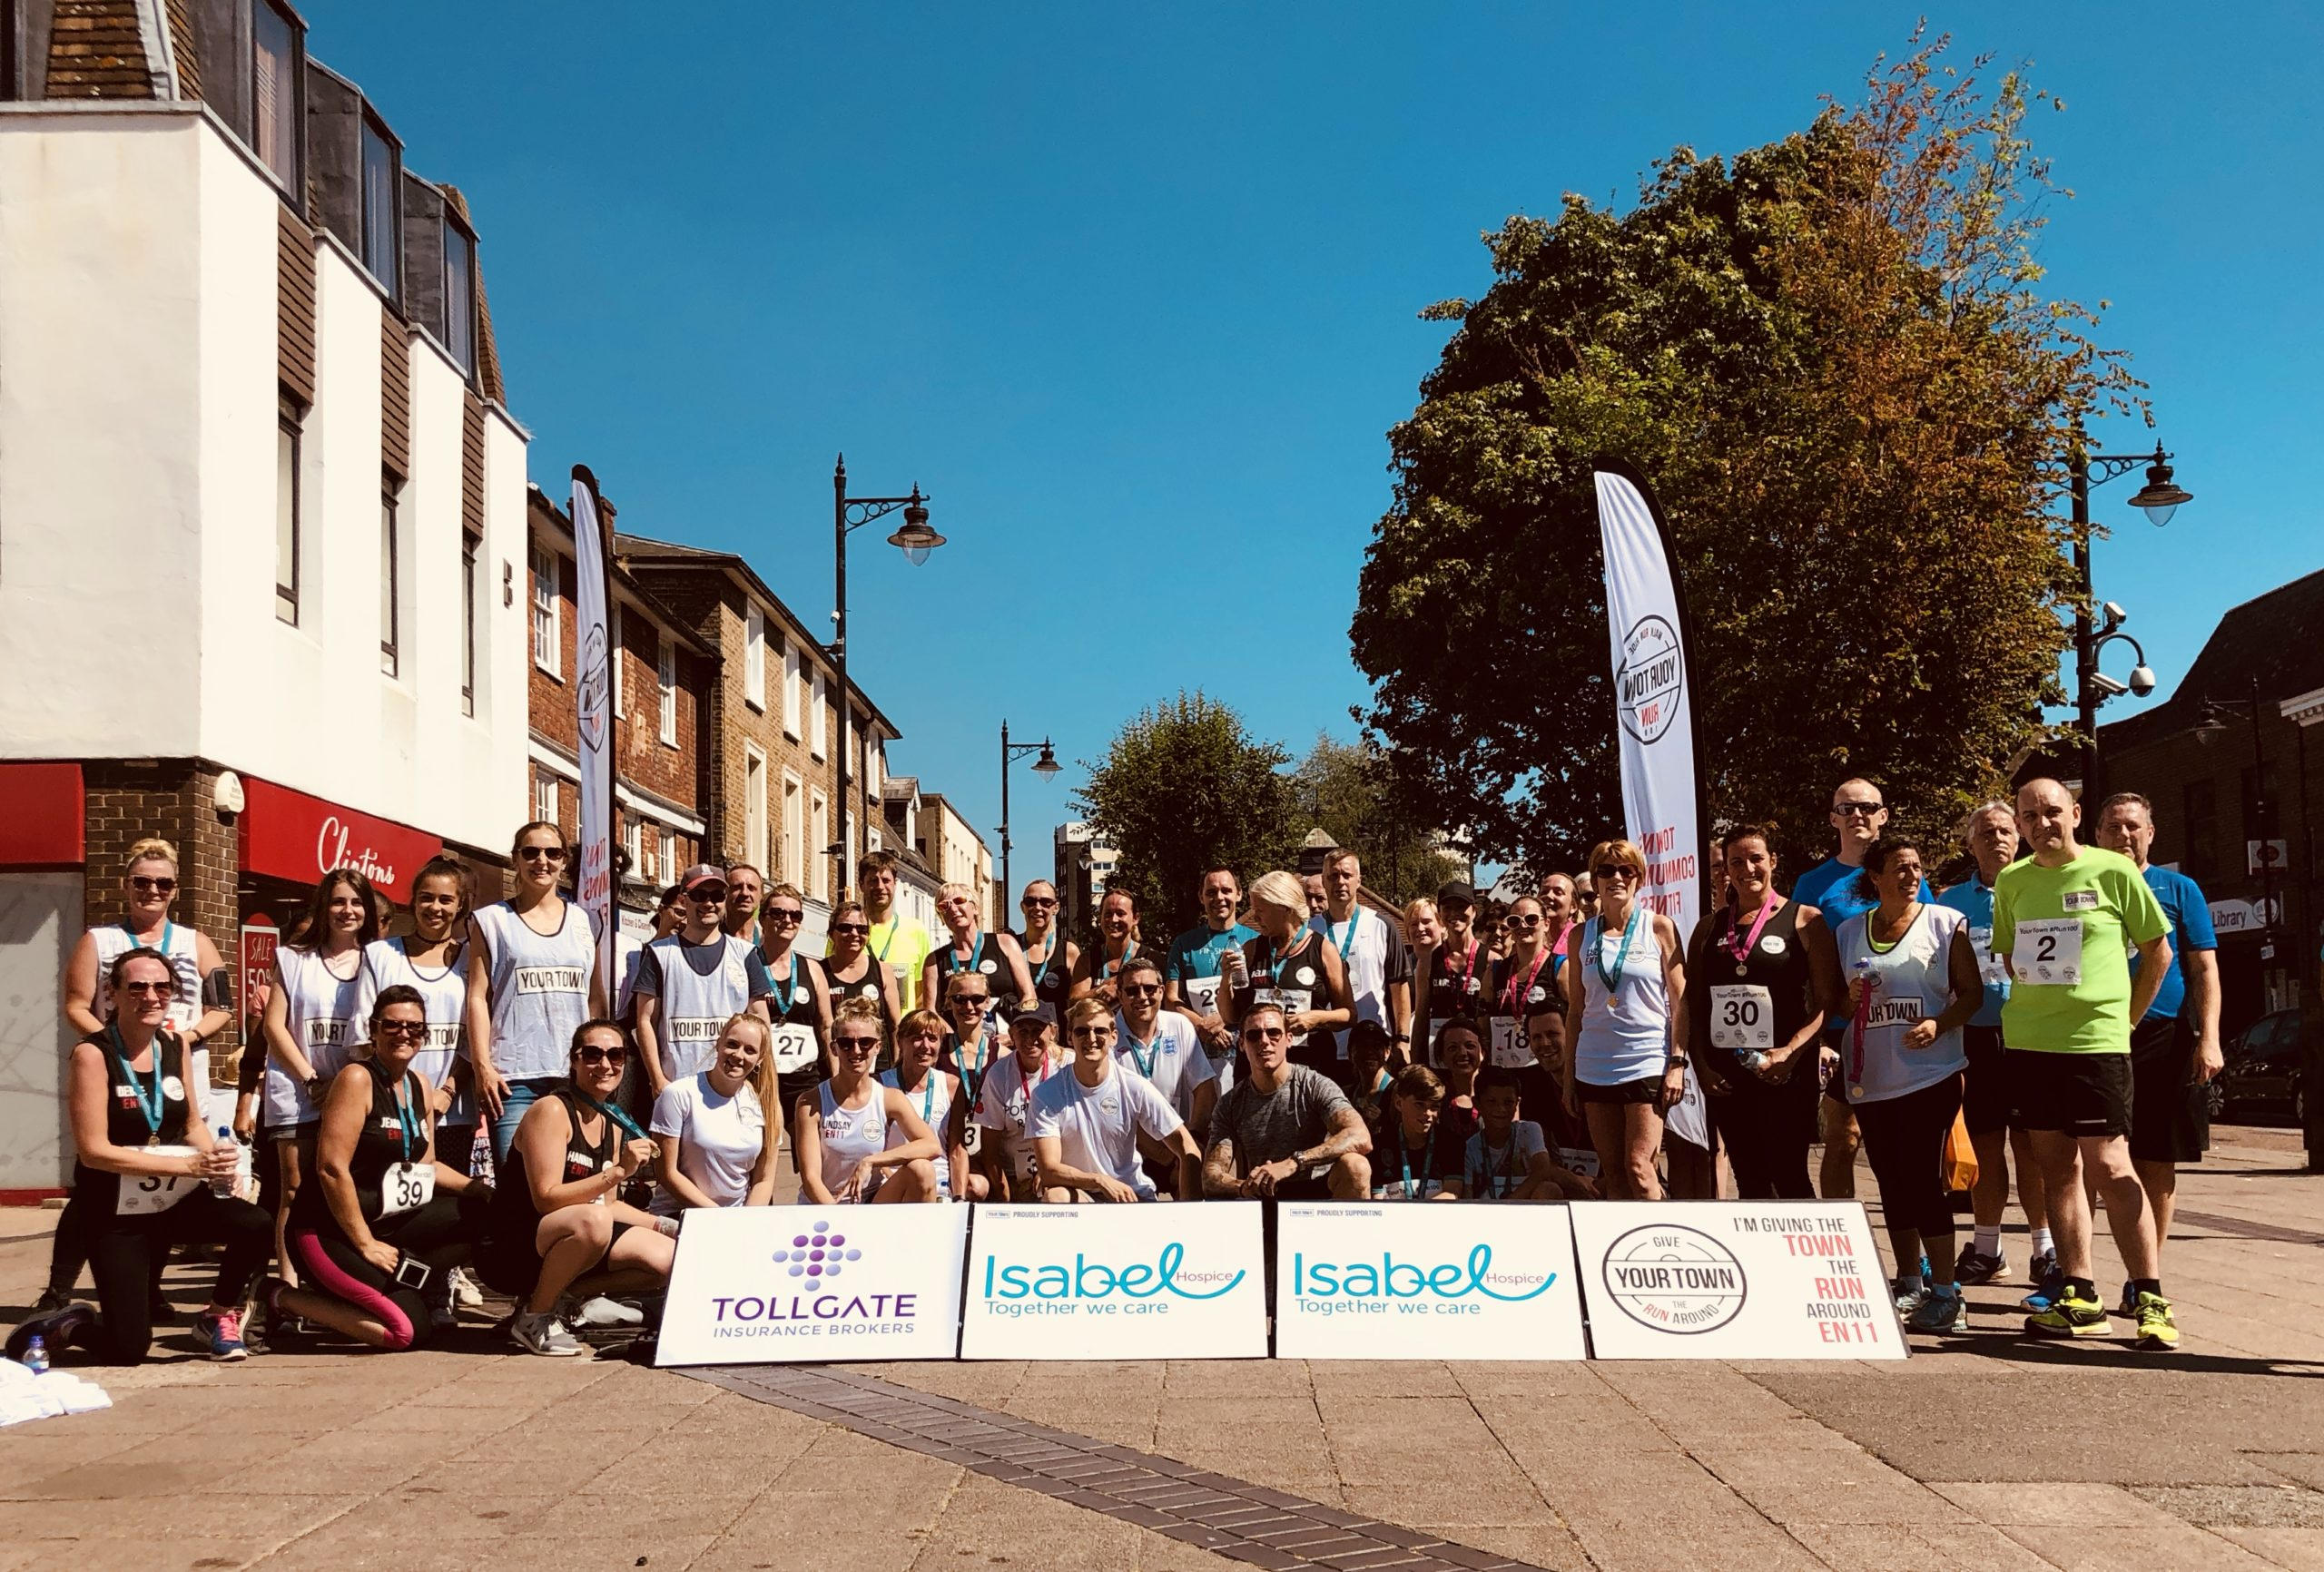 Image shows a group of runners who have just finished a 5km Get-Together run with Your Town CIC, supporting Isabel Hospice.